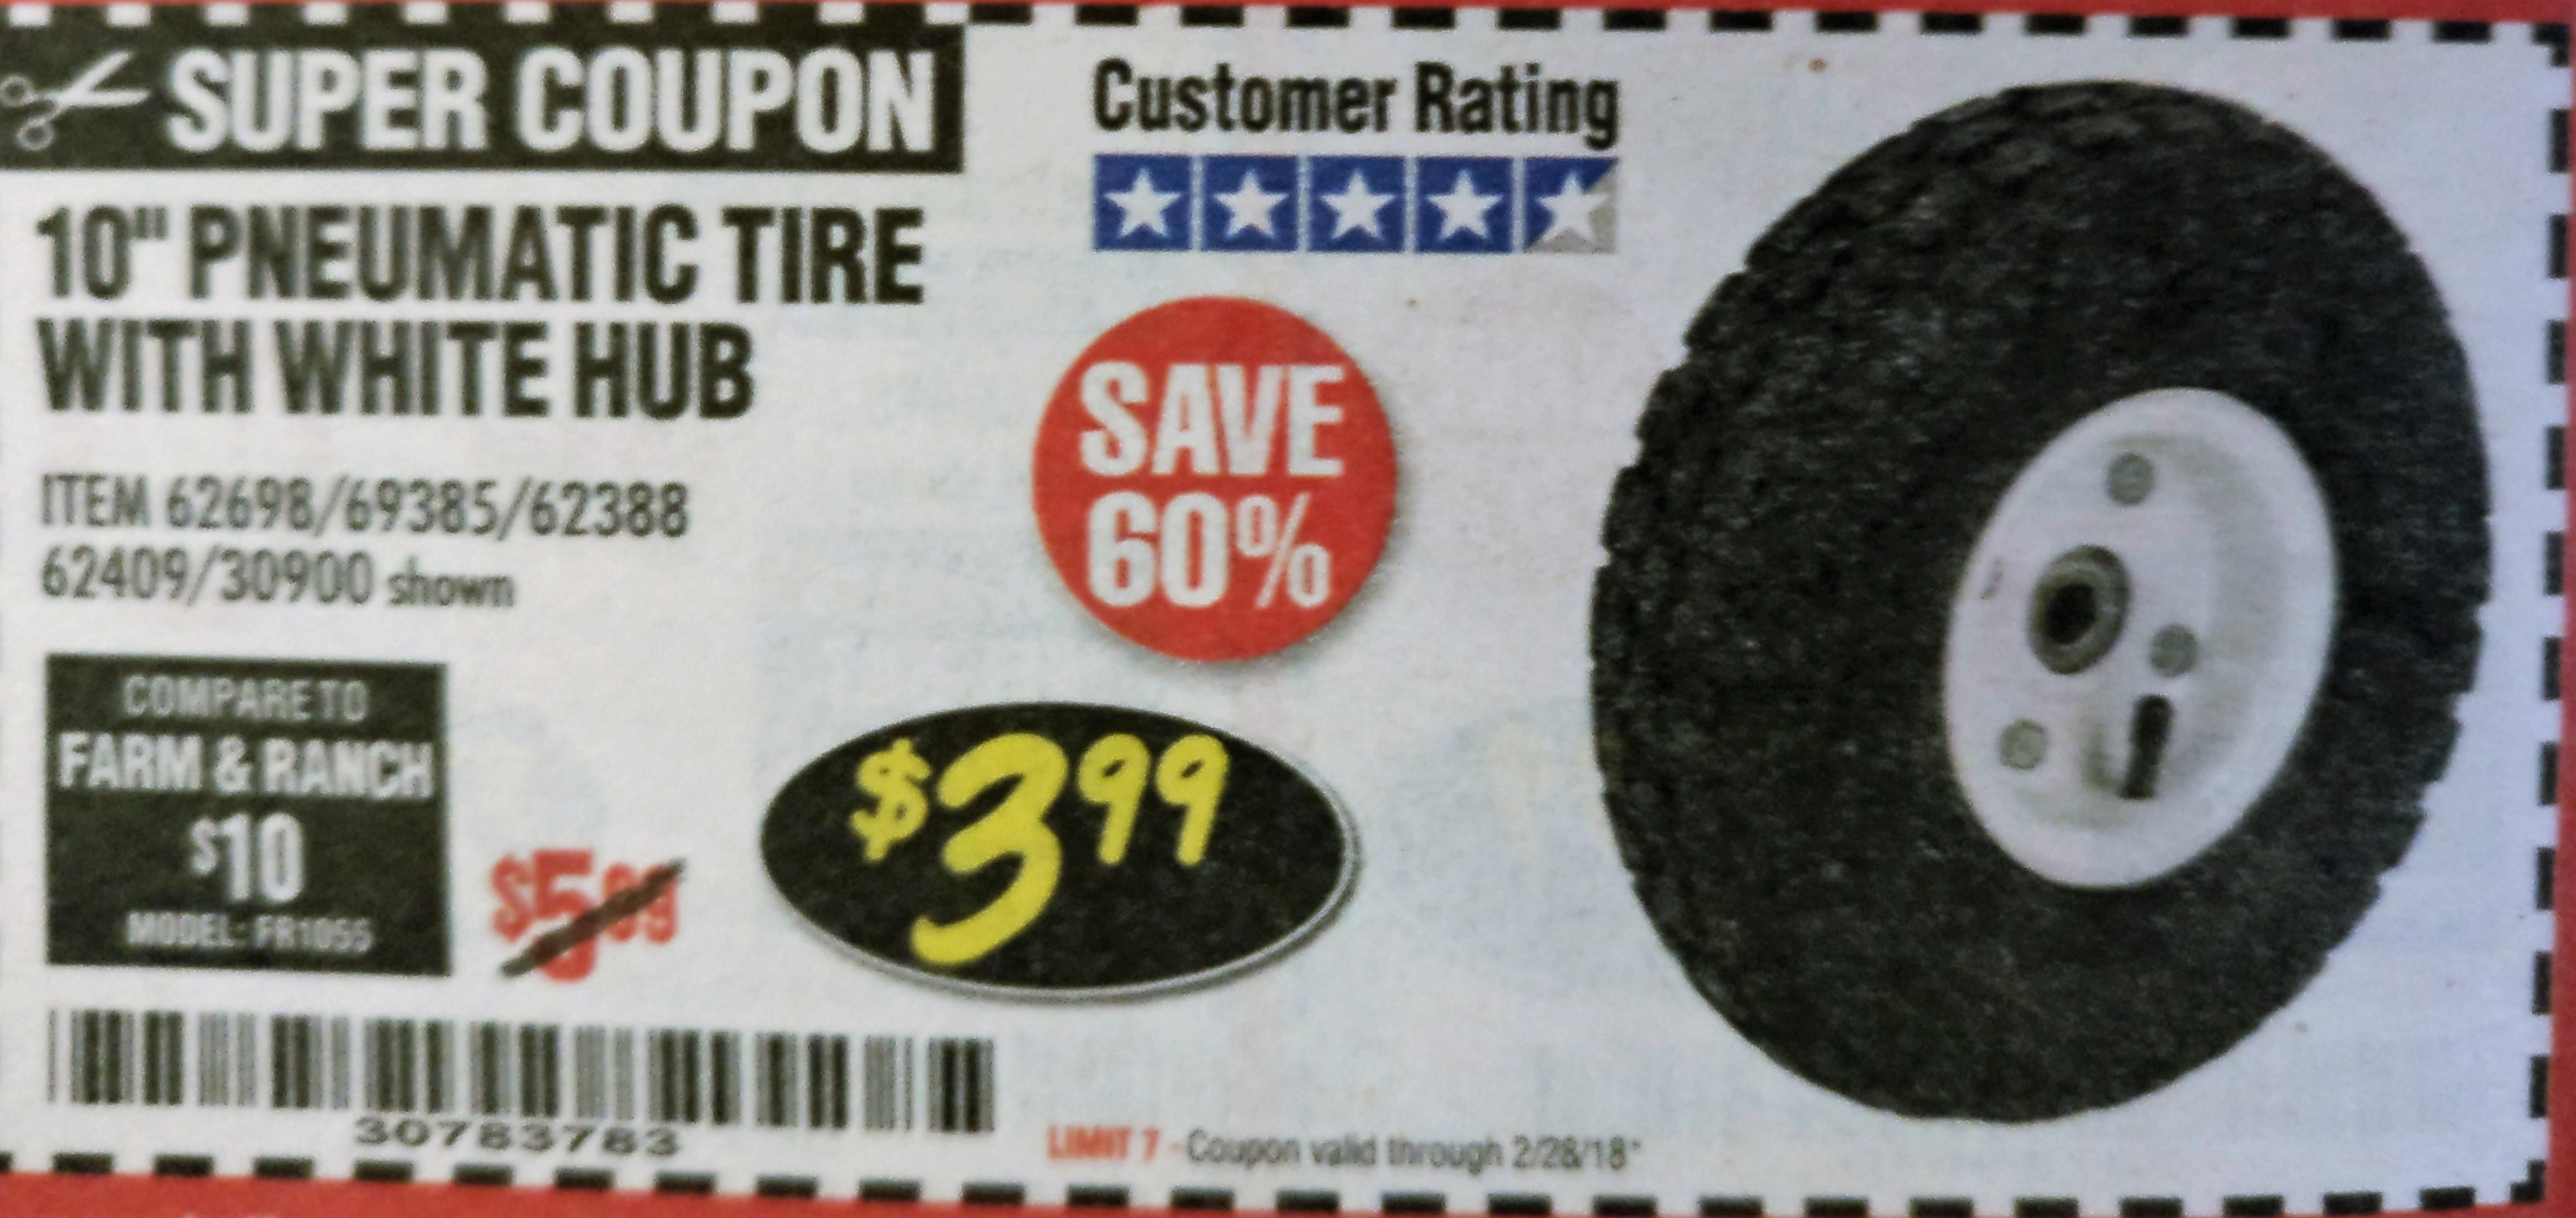 Harbor Freight 10' Heavy Duty Pneumatic Tire with White Hub coupon